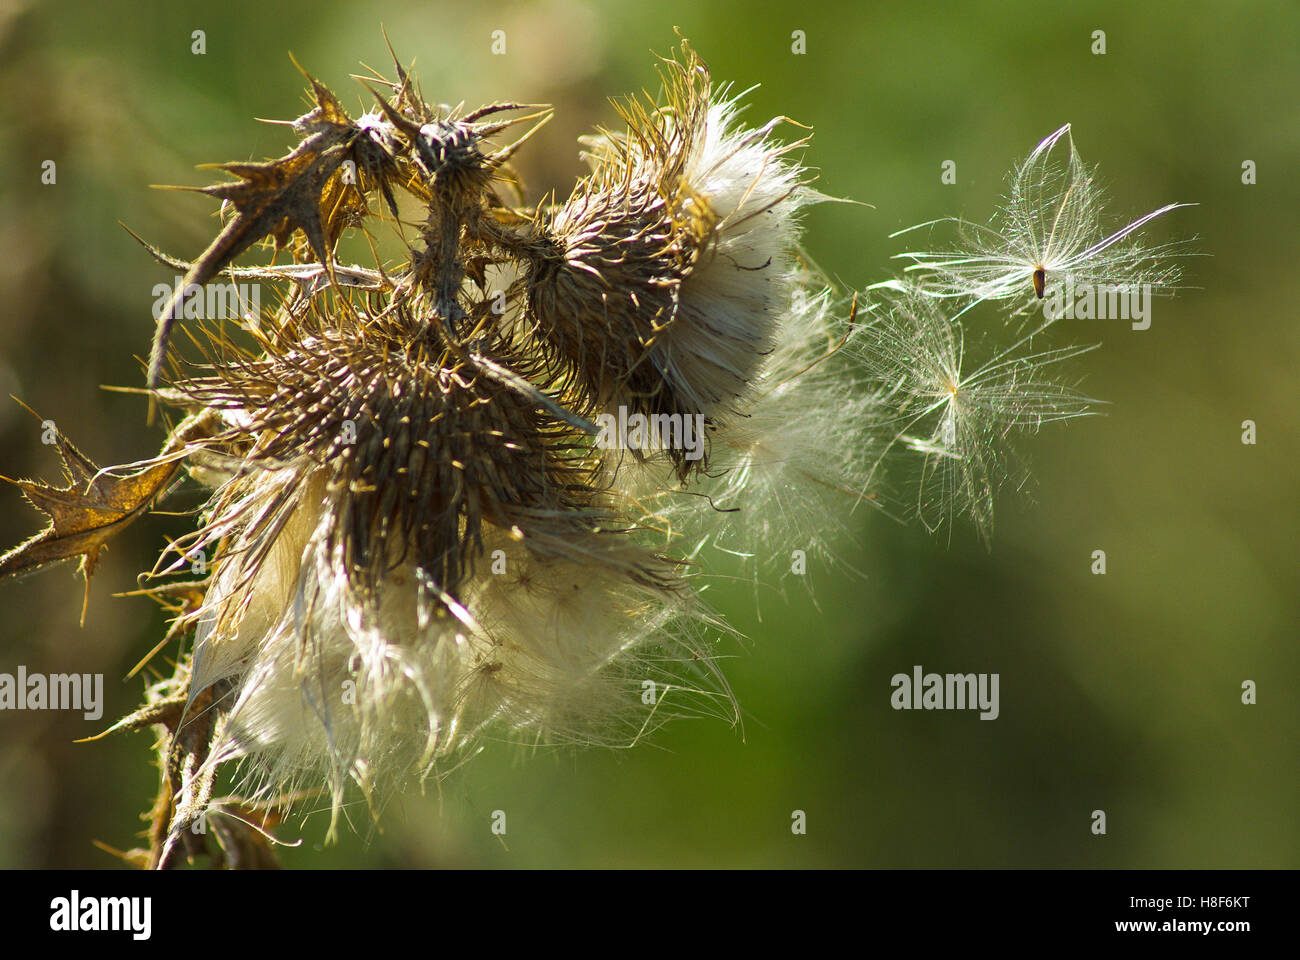 White soft and fluffy thistle seeds on a dried brown flower head white soft and fluffy thistle seeds on a dried brown flower head ready to be carried away by the wind dune vegetation mightylinksfo